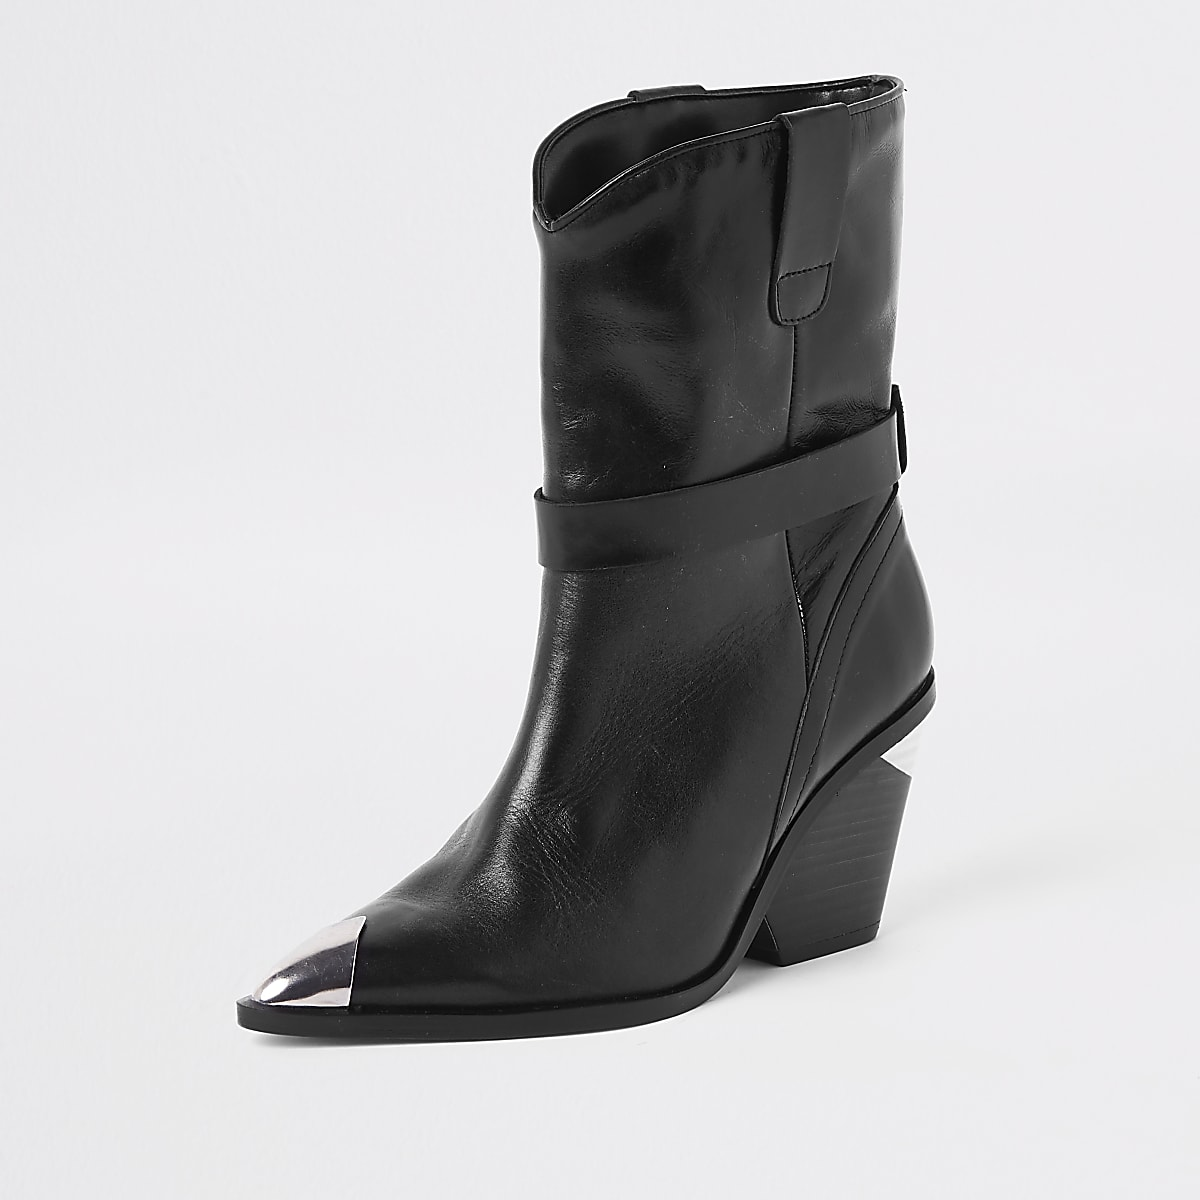 72094698a Black leather western ankle boots - Boots - Shoes & Boots - women